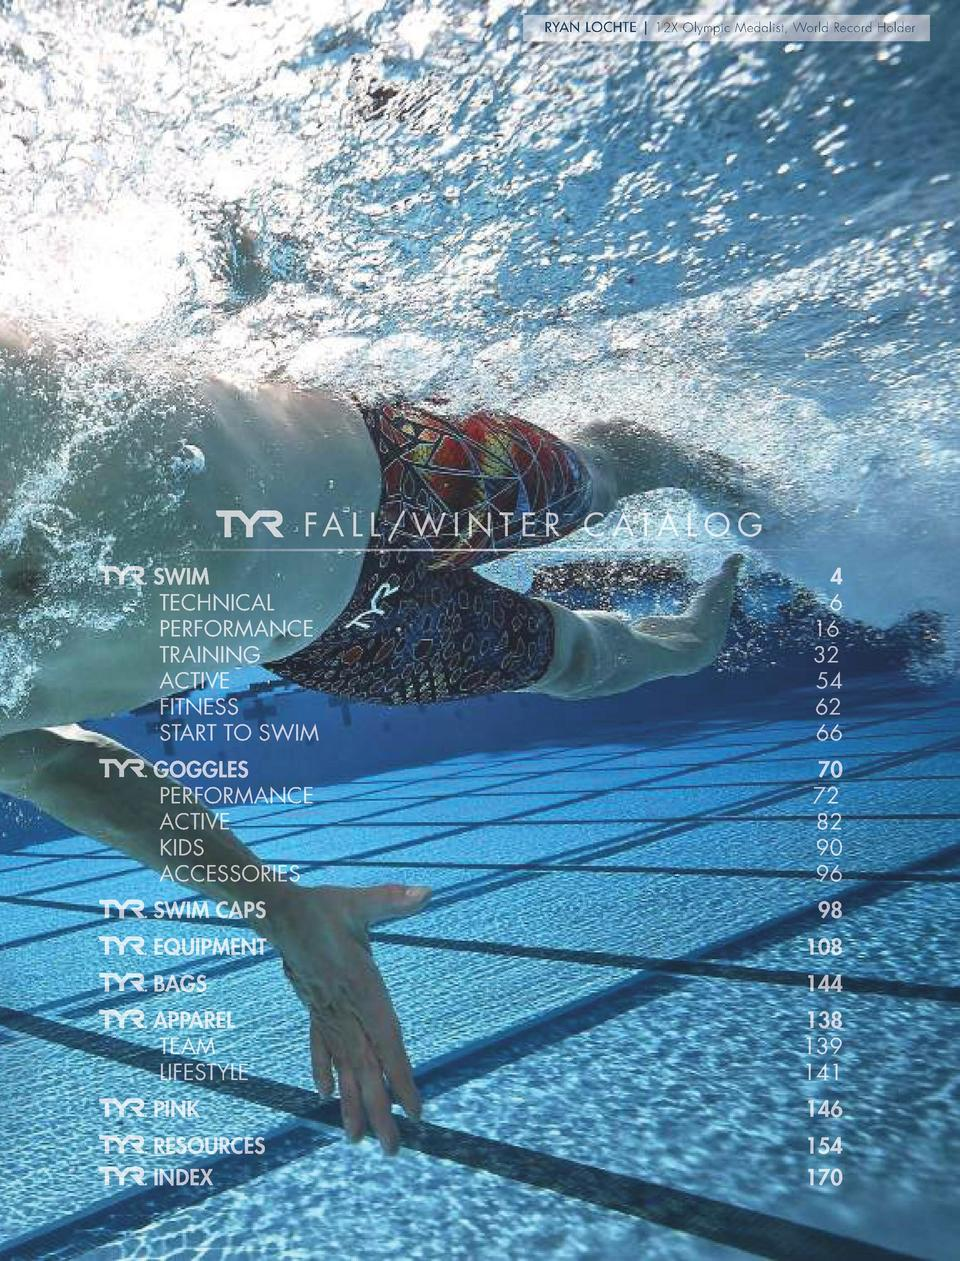 RYAN LOCHTE   12X Olympic Medalist, World Record Holder  FA L L   W I N T E R C ATA L O G SWIM  4    TECHNICAL 6  PERFORMA...